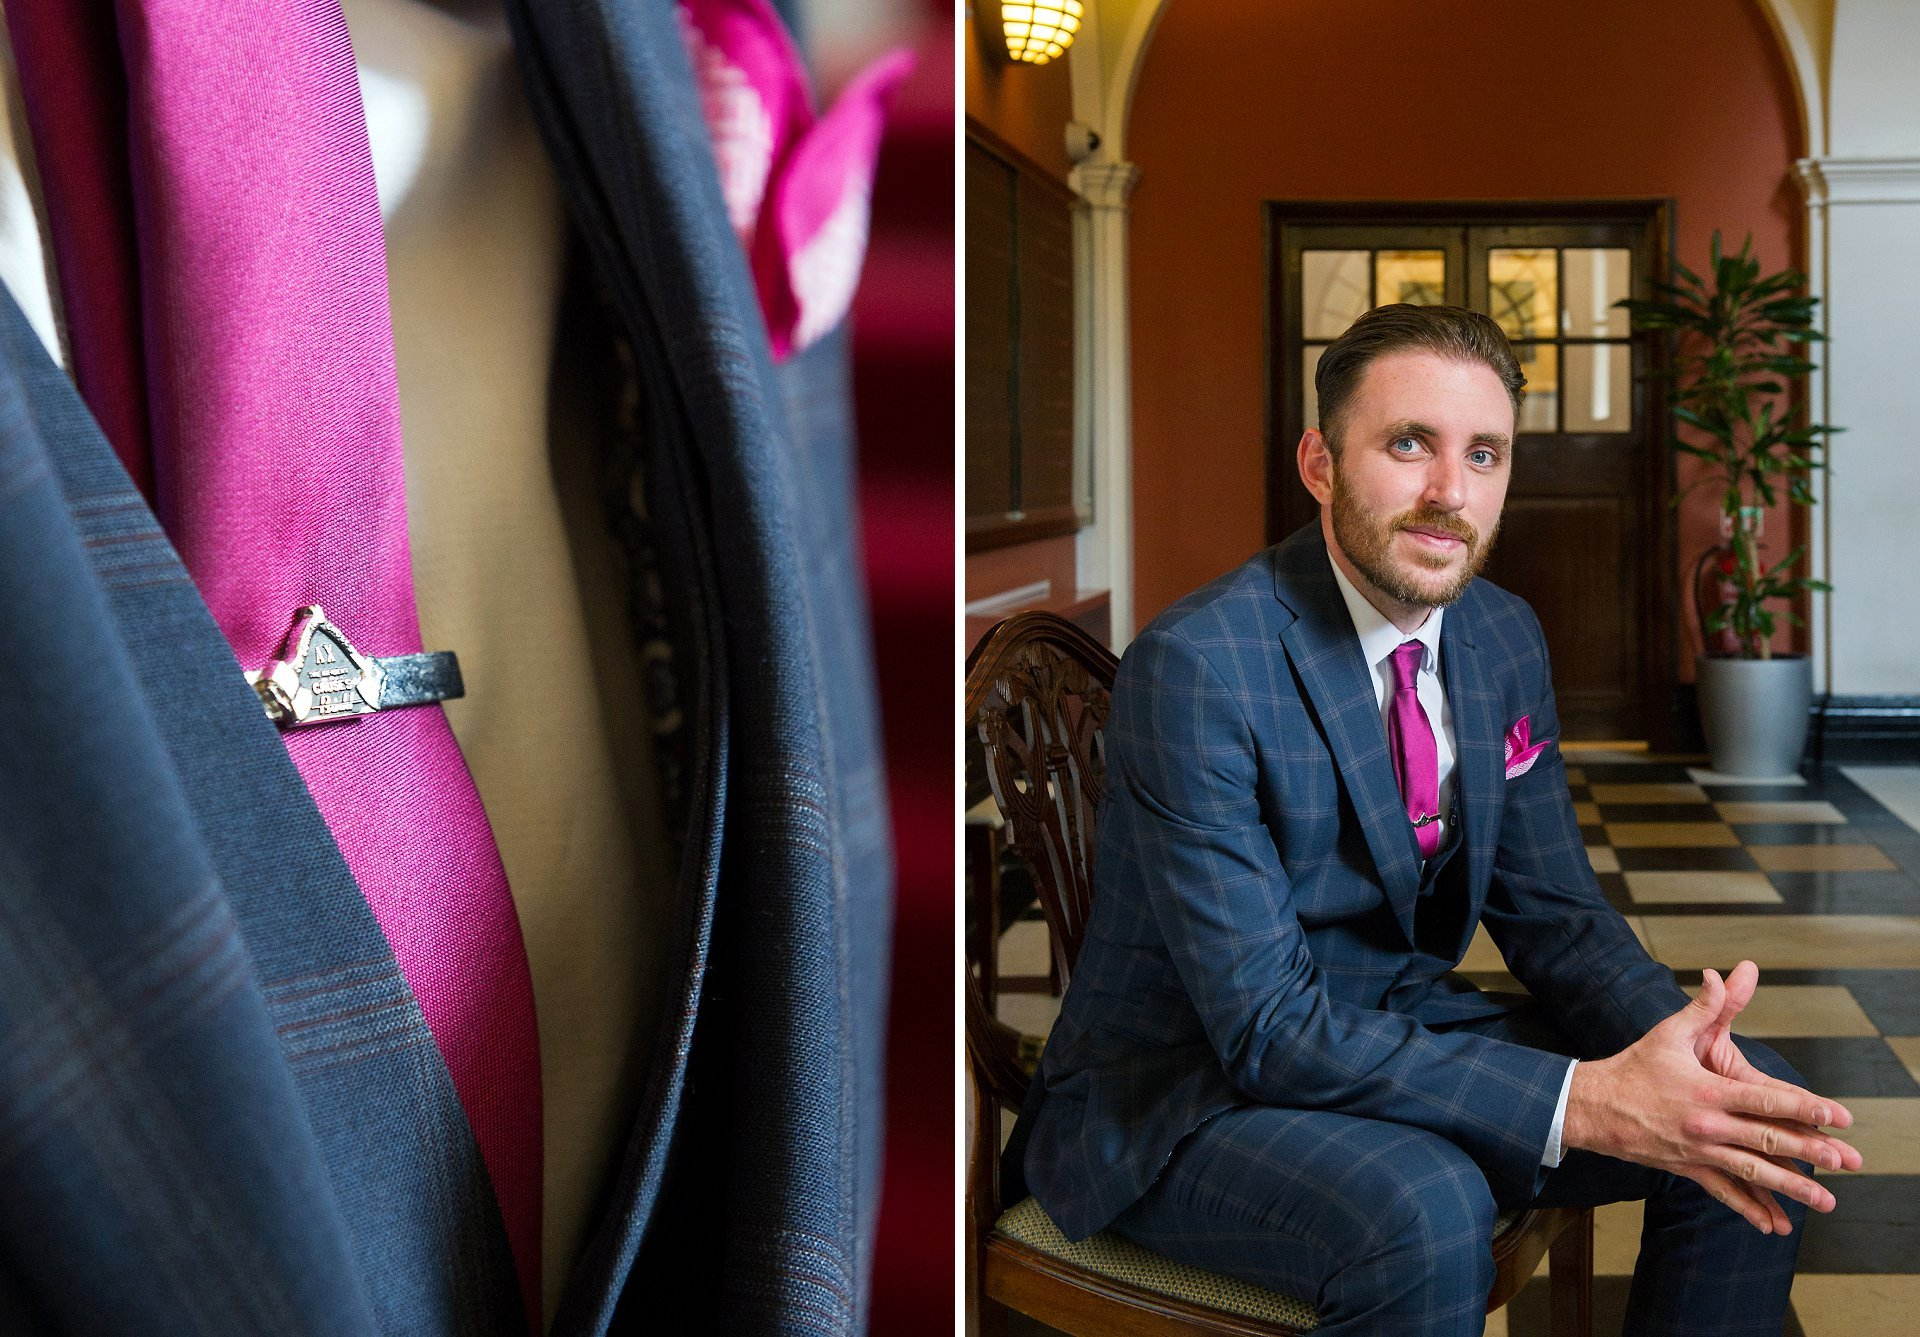 Groom wearing a check blue three-piece suit, deep magenta tie and matching handkerchief and vintage tie pin in the waiting room at Chelsea Old Town Hall